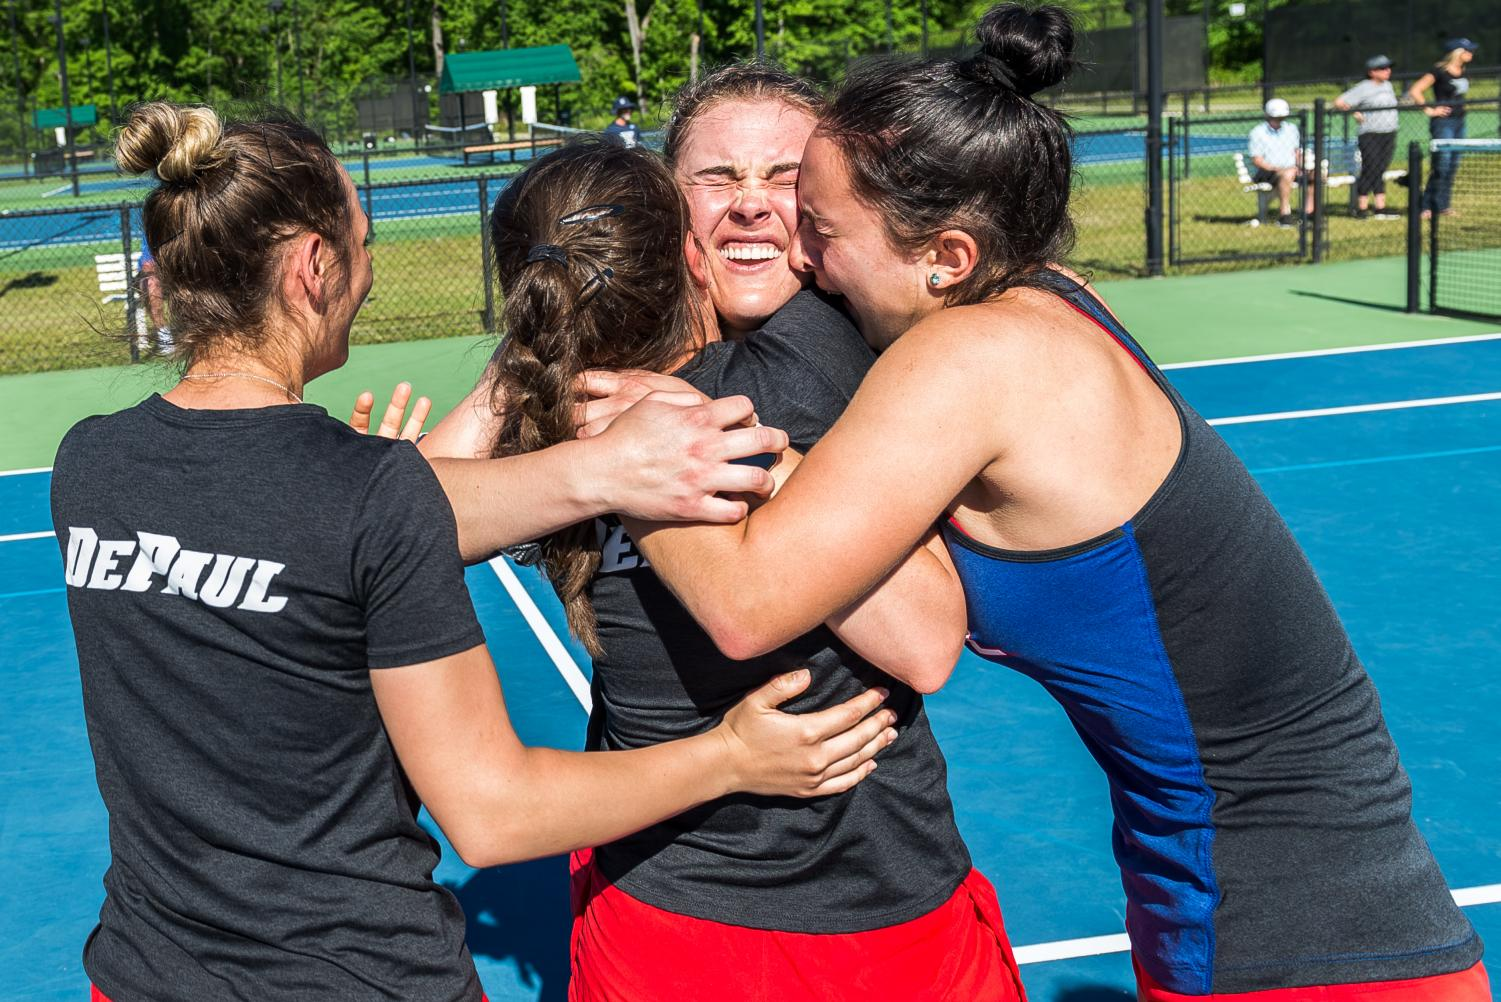 Three DePaul women's tennis players celebrate together after winning the Big East Tournament on April 22 in South Carolina. DePaul defeated Xavier 4-3 in the finals.